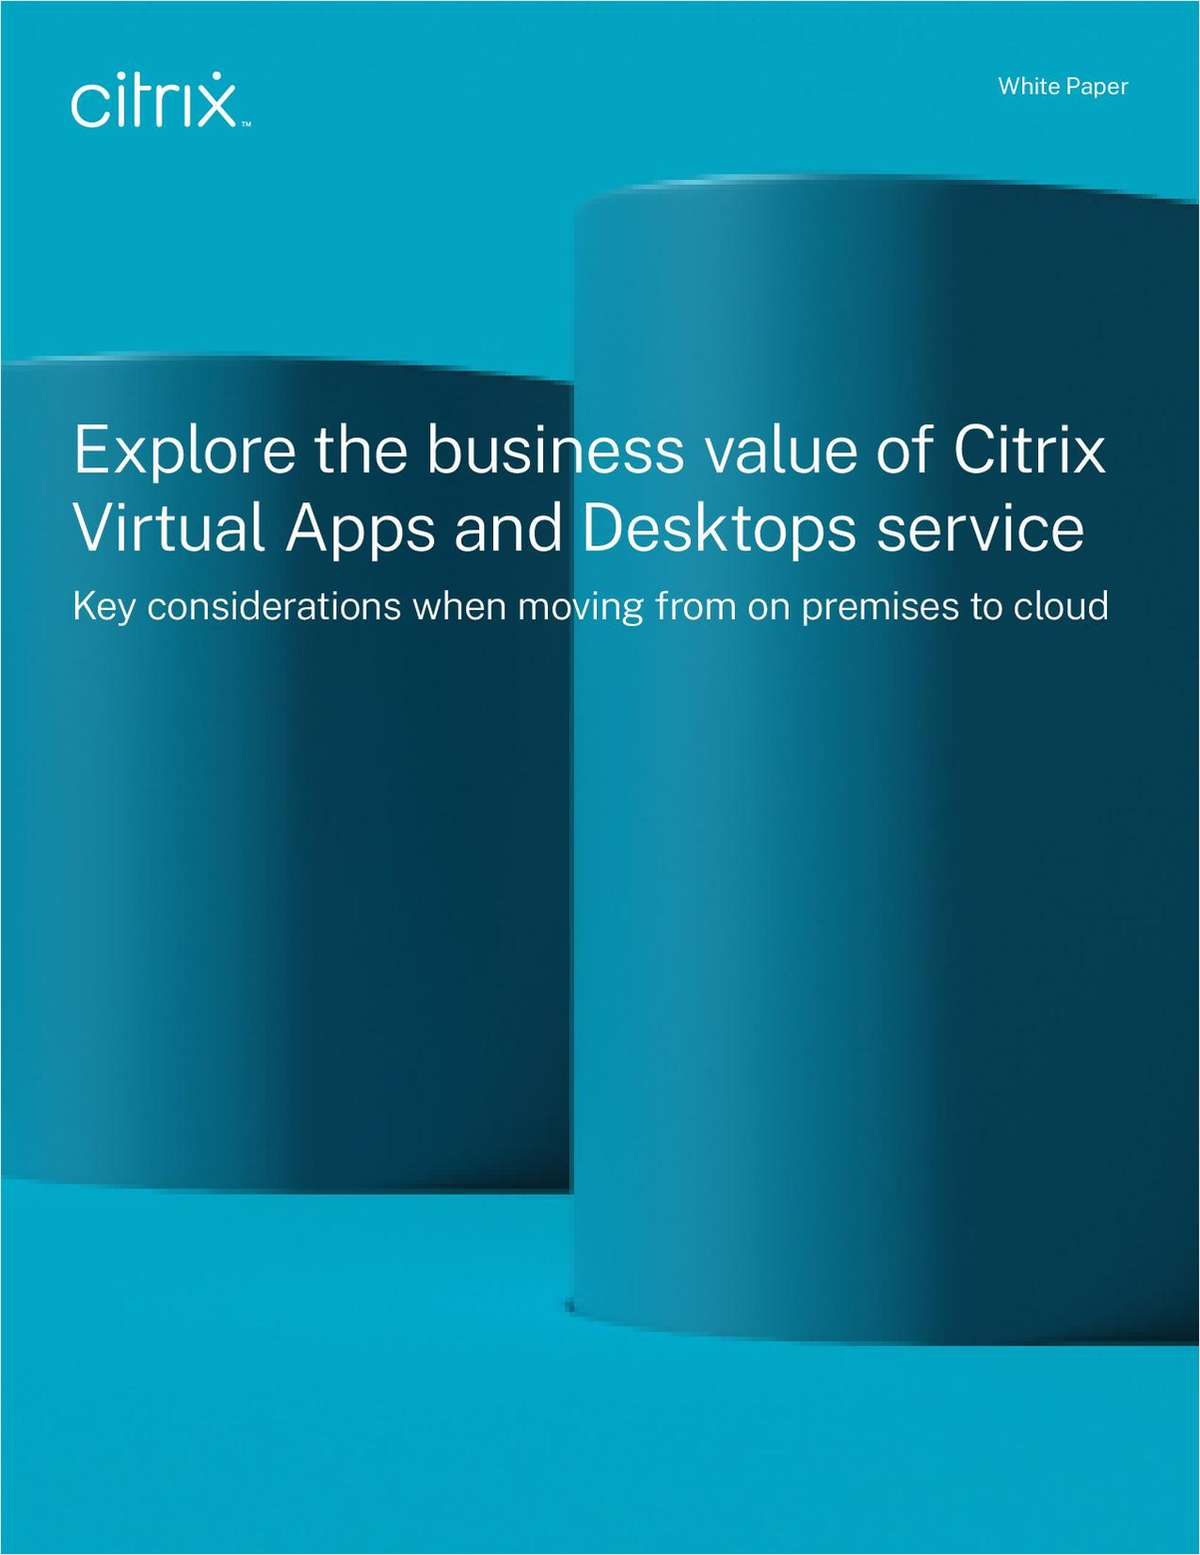 Explore the Business Value of Citrix Virtual Apps and Desktops Service: Key Considerations When Moving From on Premises to Cloud